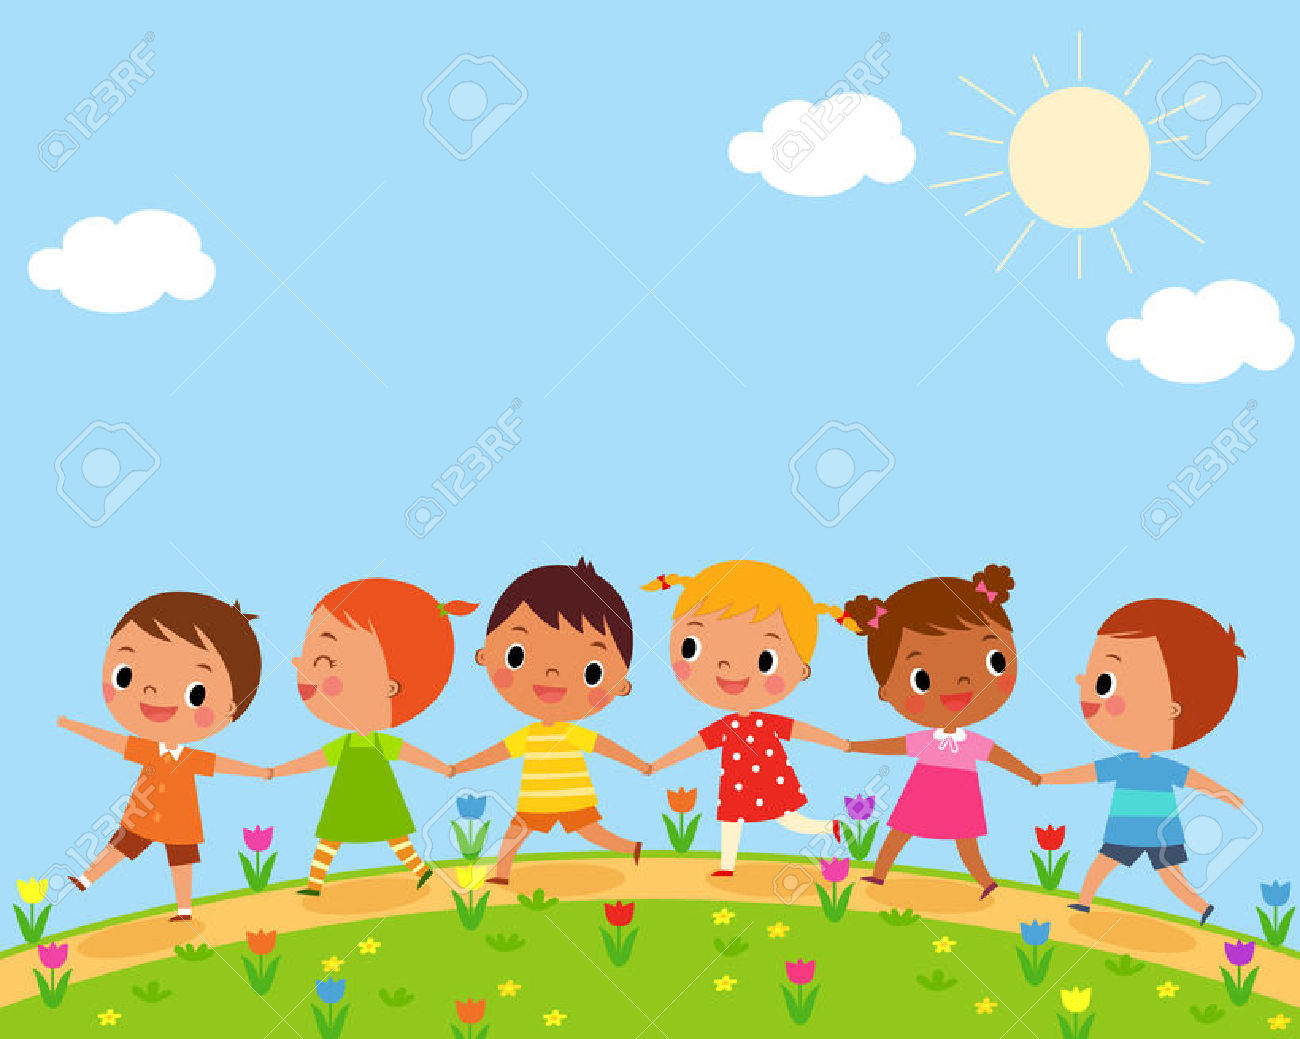 Illustration Of Children Walk On A Beautiful Spring Day Royalty.